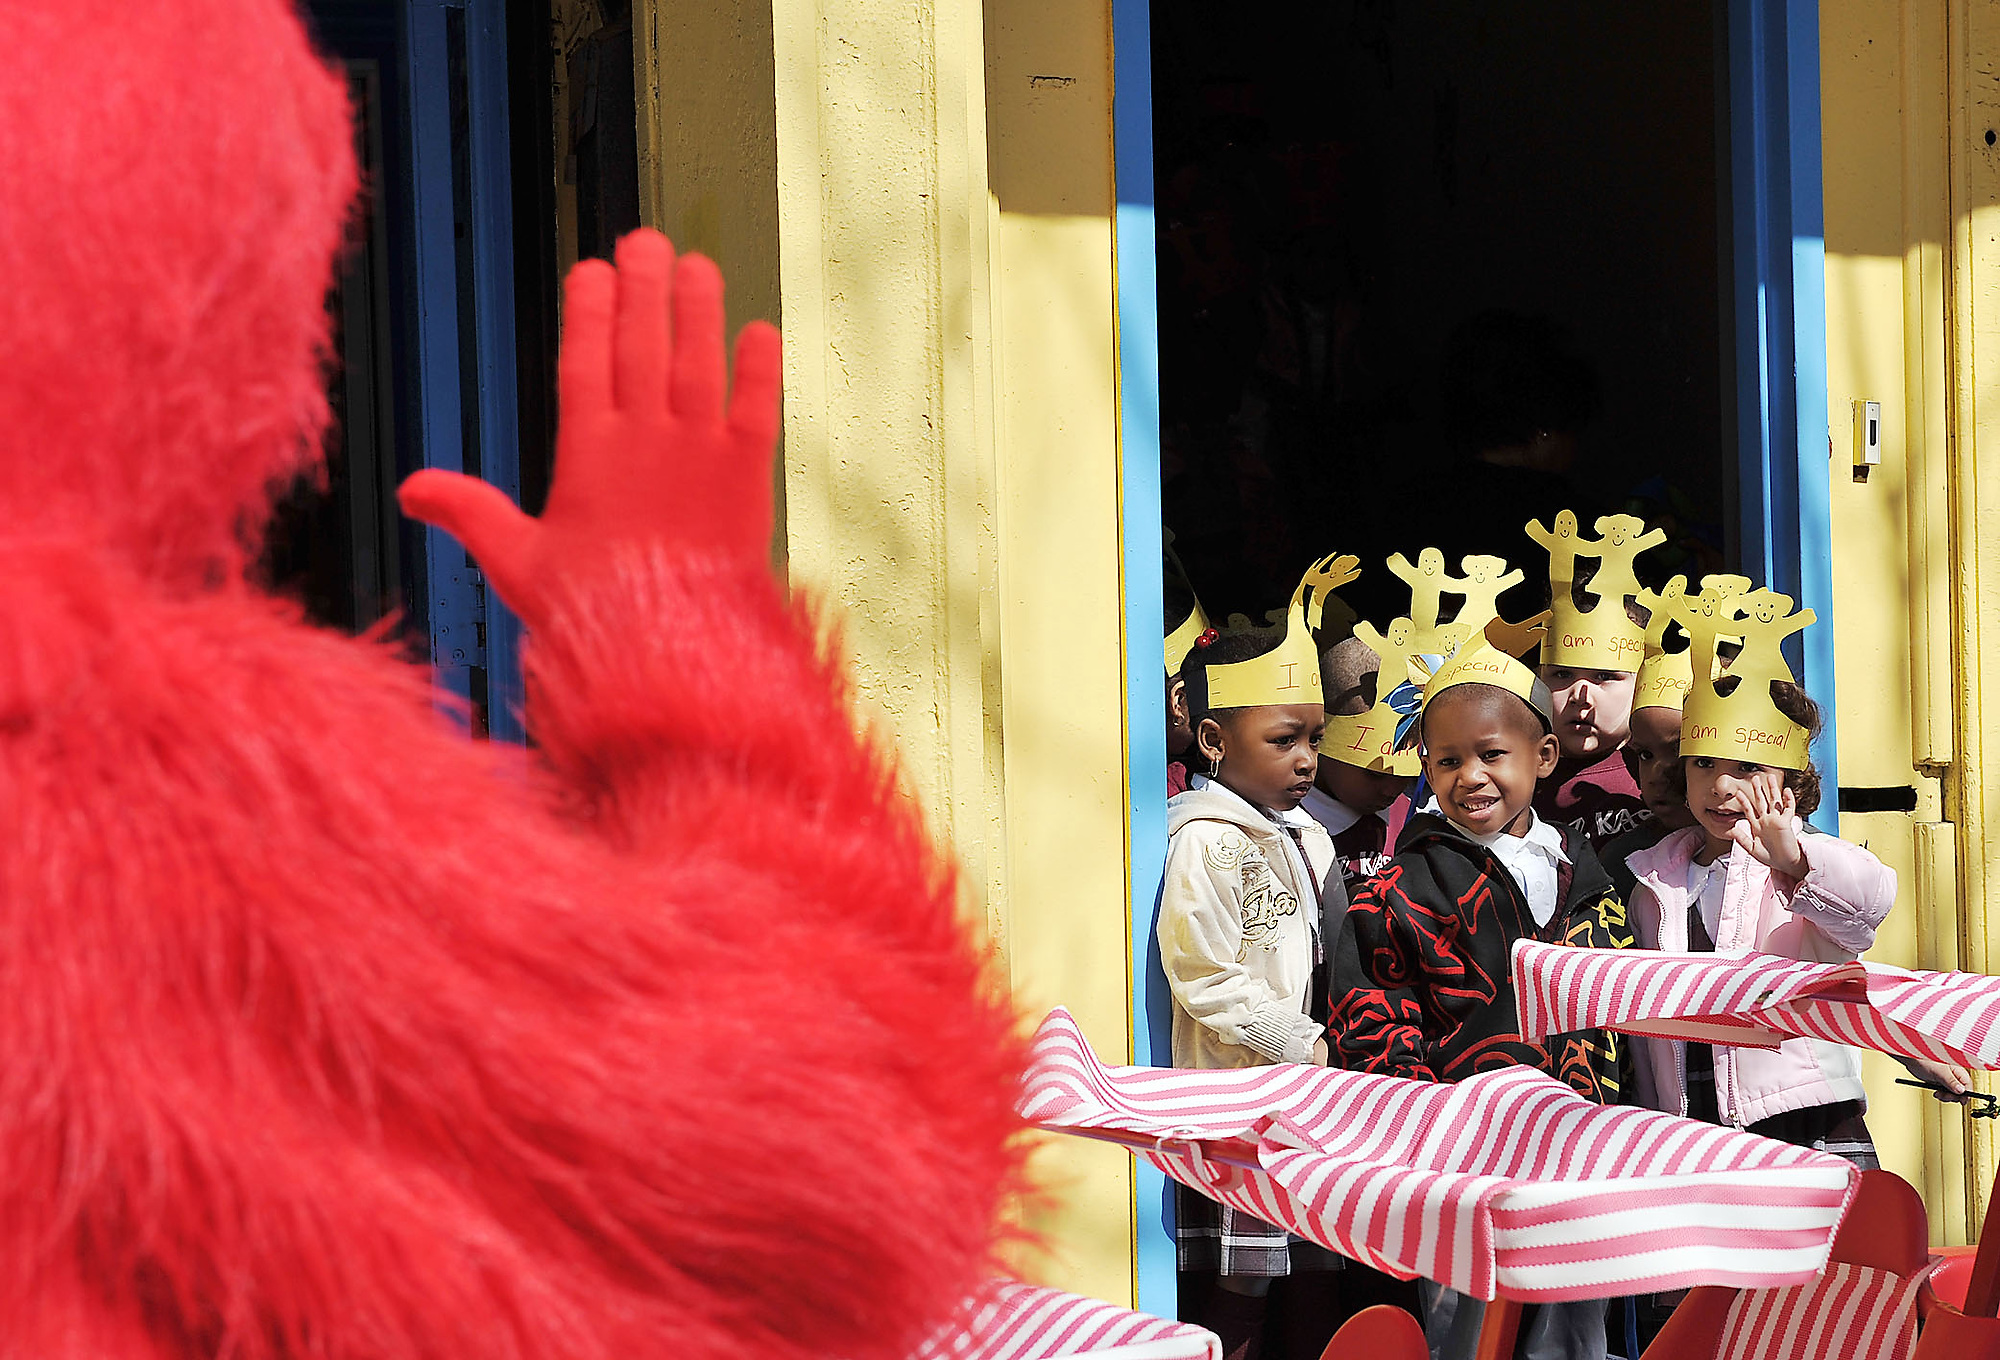 Pre-K students at the Kidz Kastle II on Ocean Avenue wave to Elmo as they prepare to march down the block in celebration of The Week of the Young Child. (Reena Rose Sibayan | The Jersey Journal)